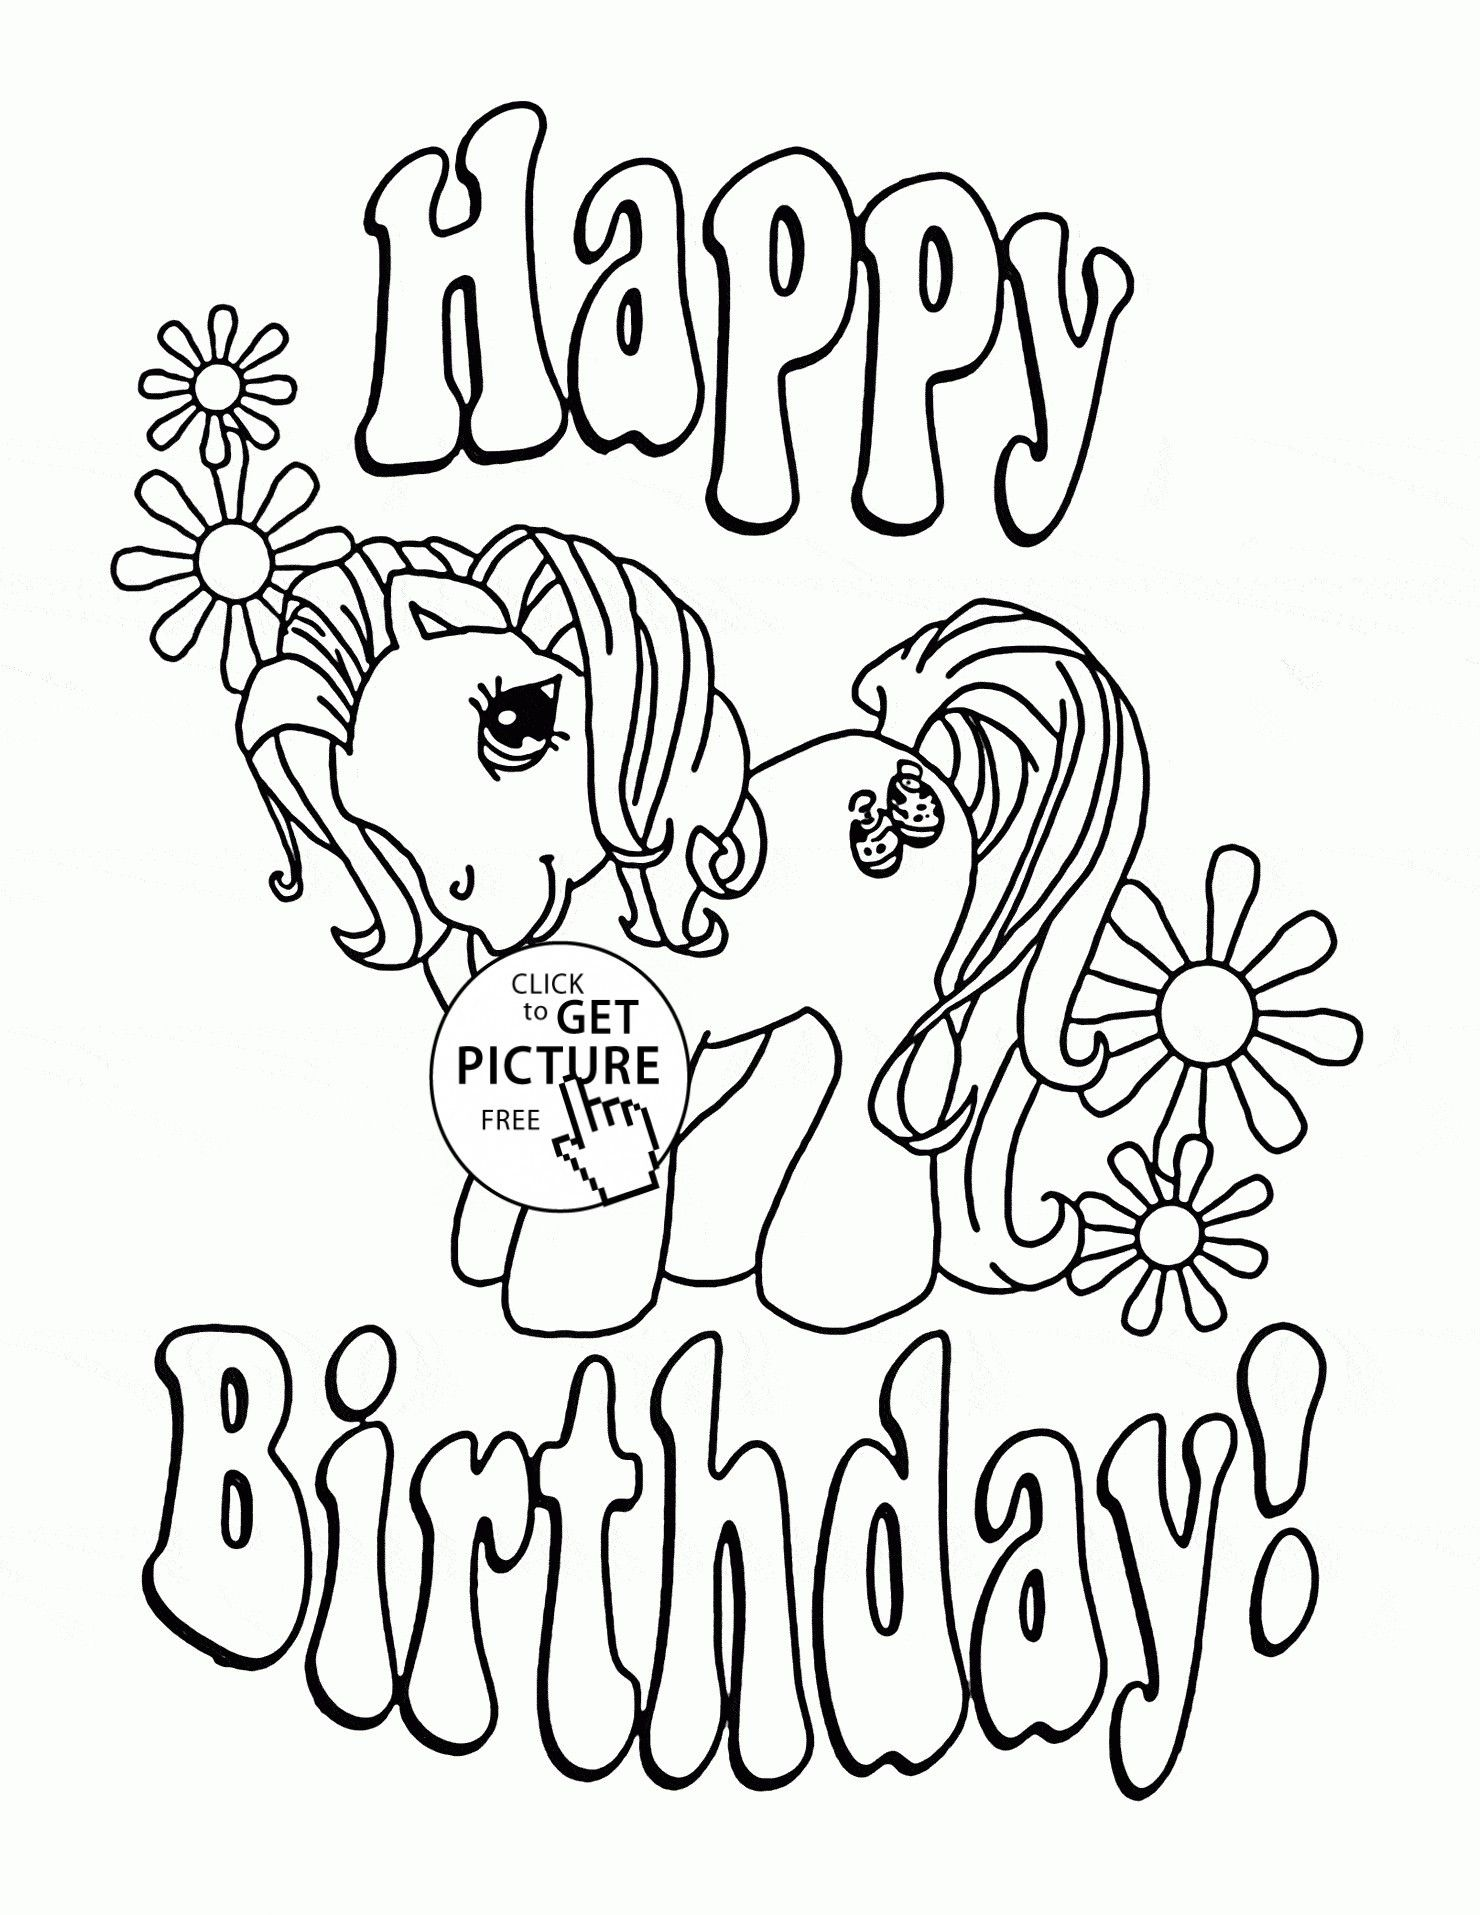 Printable Unicorn Coloring Pages Ideas For Kids Coloring Pages For